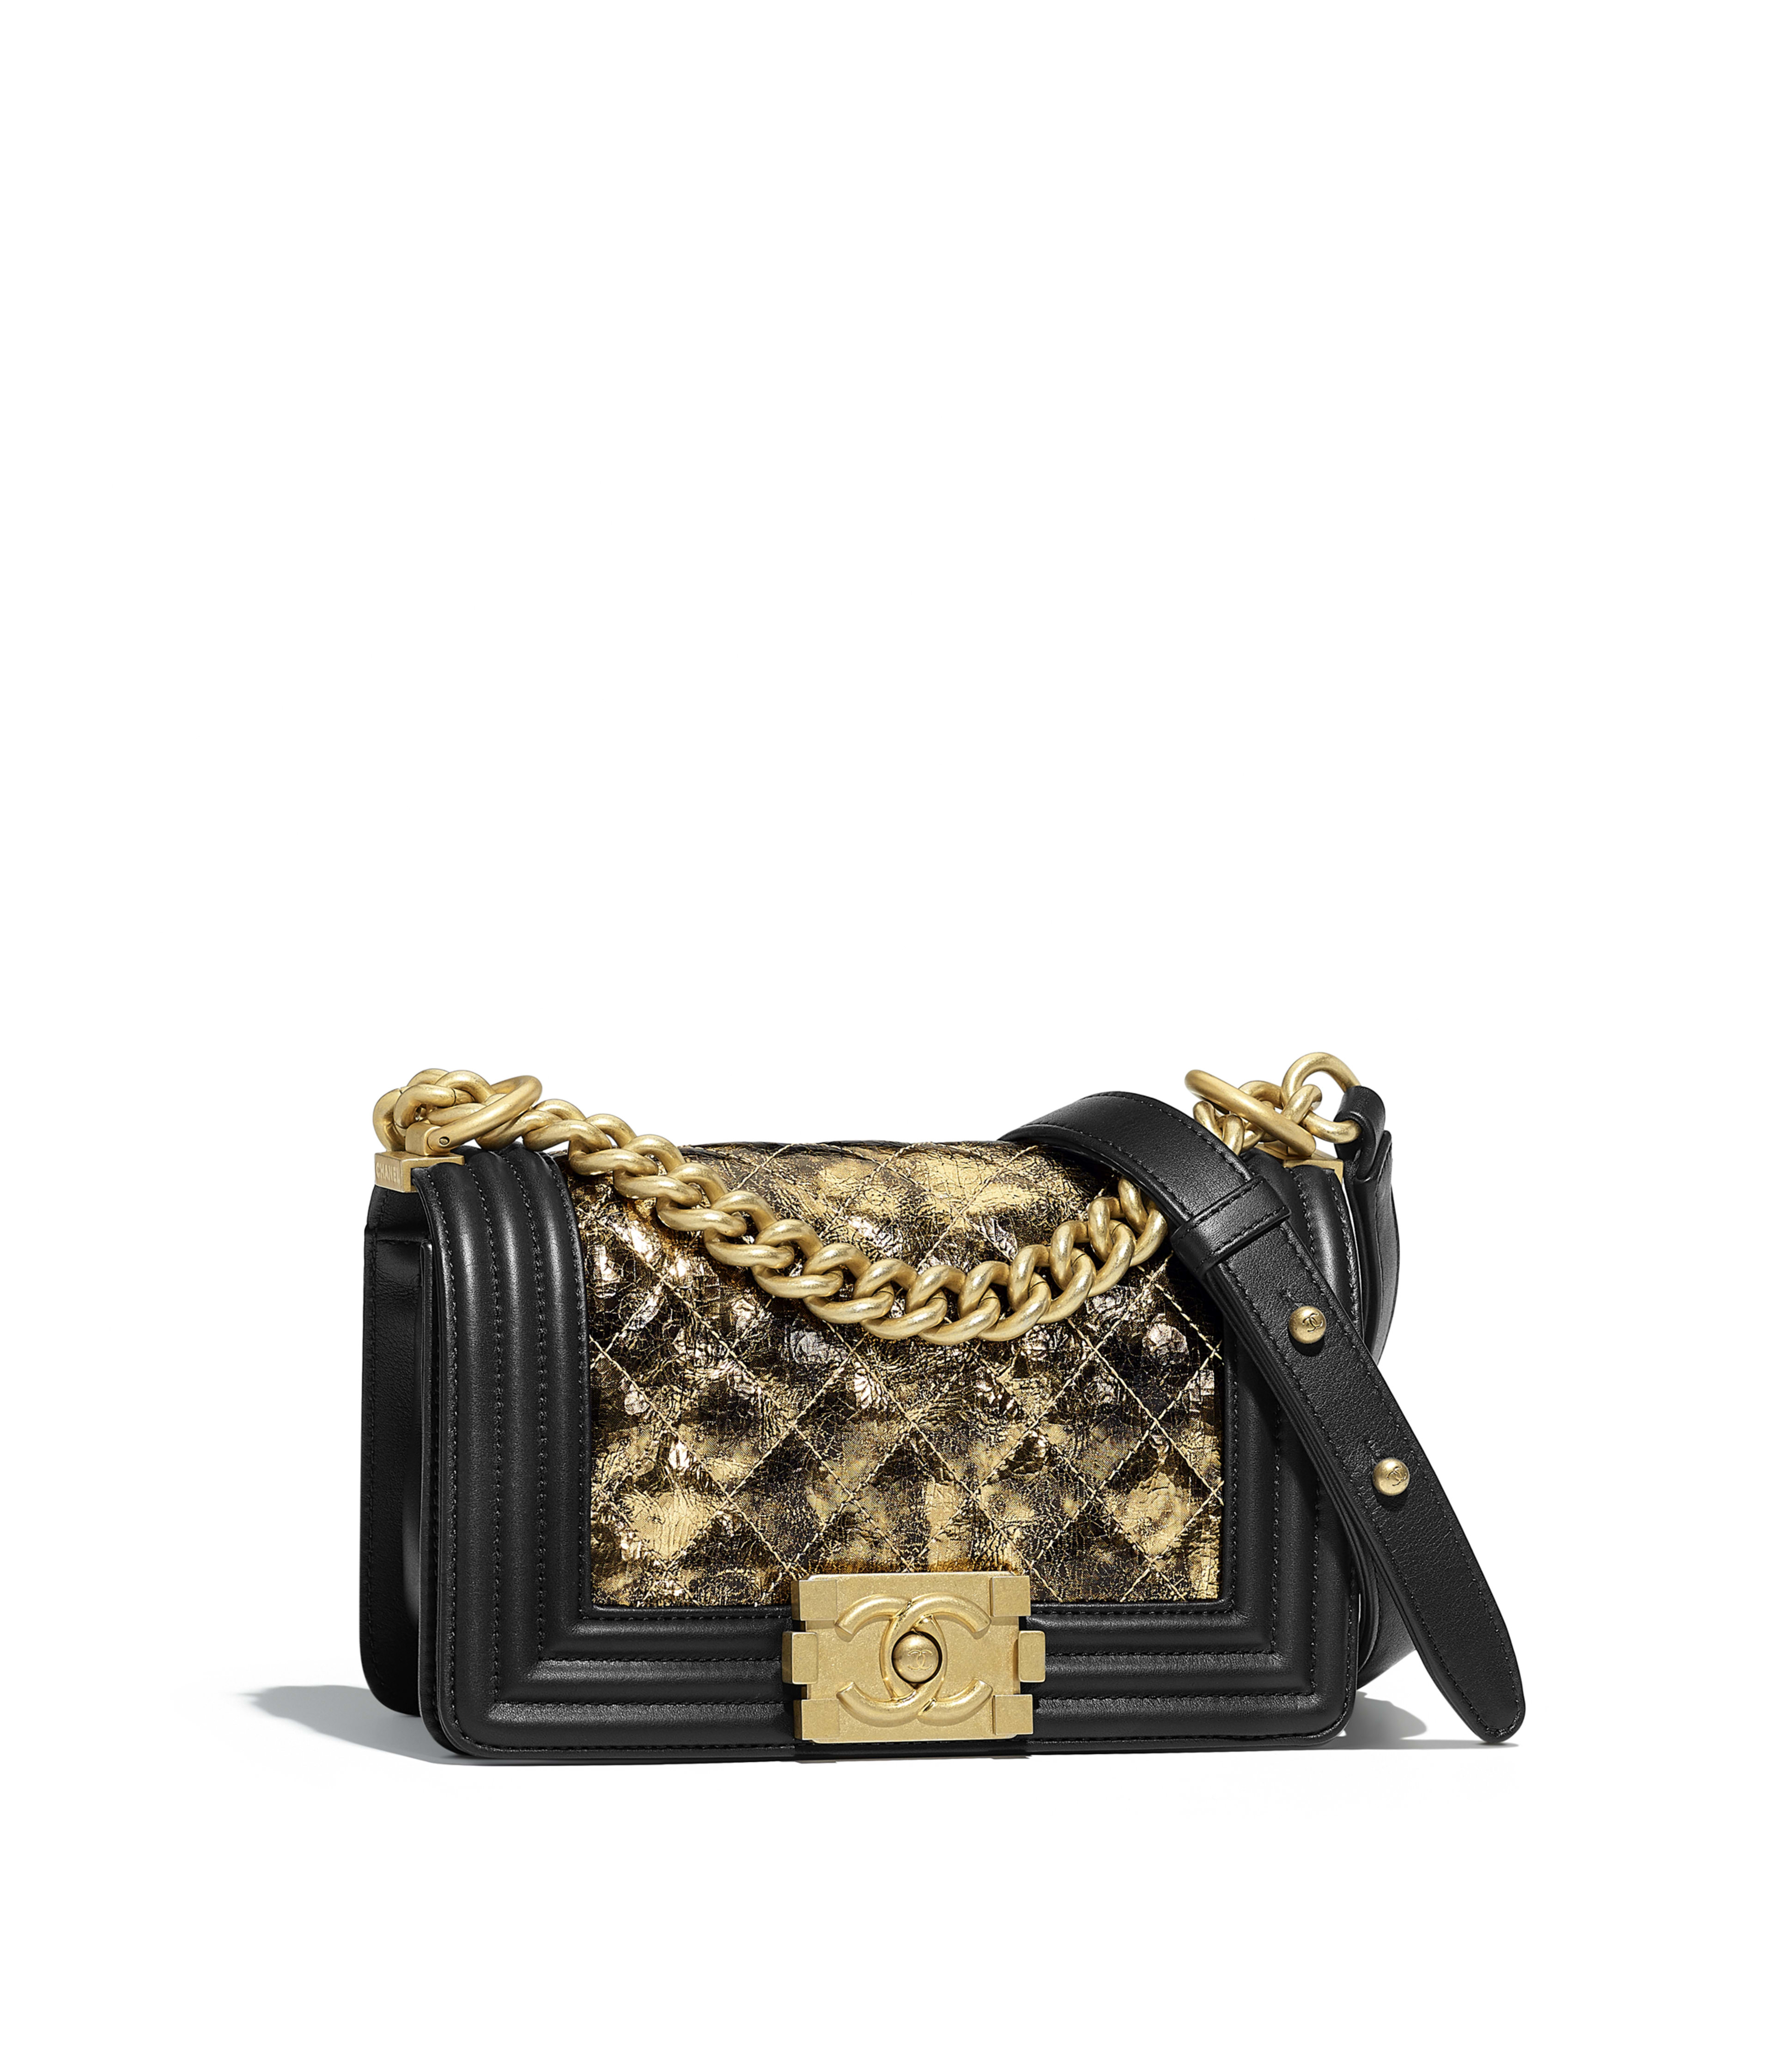 Small Boy Chanel Handbag Metallic Crumpled Goatskin Calfskin Gold Tone Metal Black Ref A67085y84058c9368